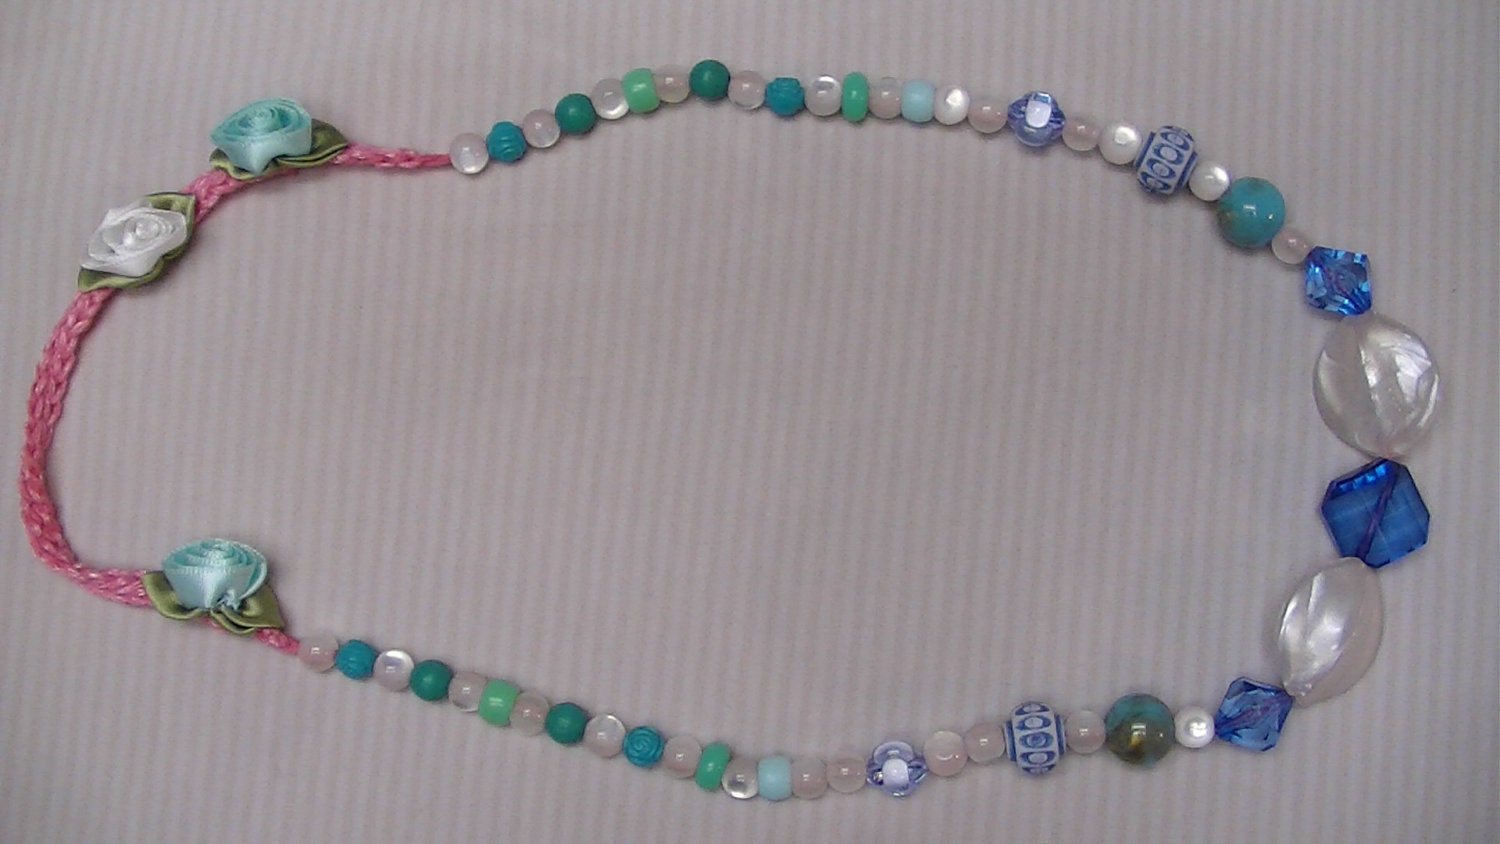 Crochet necklace, ribbon flowers and beads in blue and white.